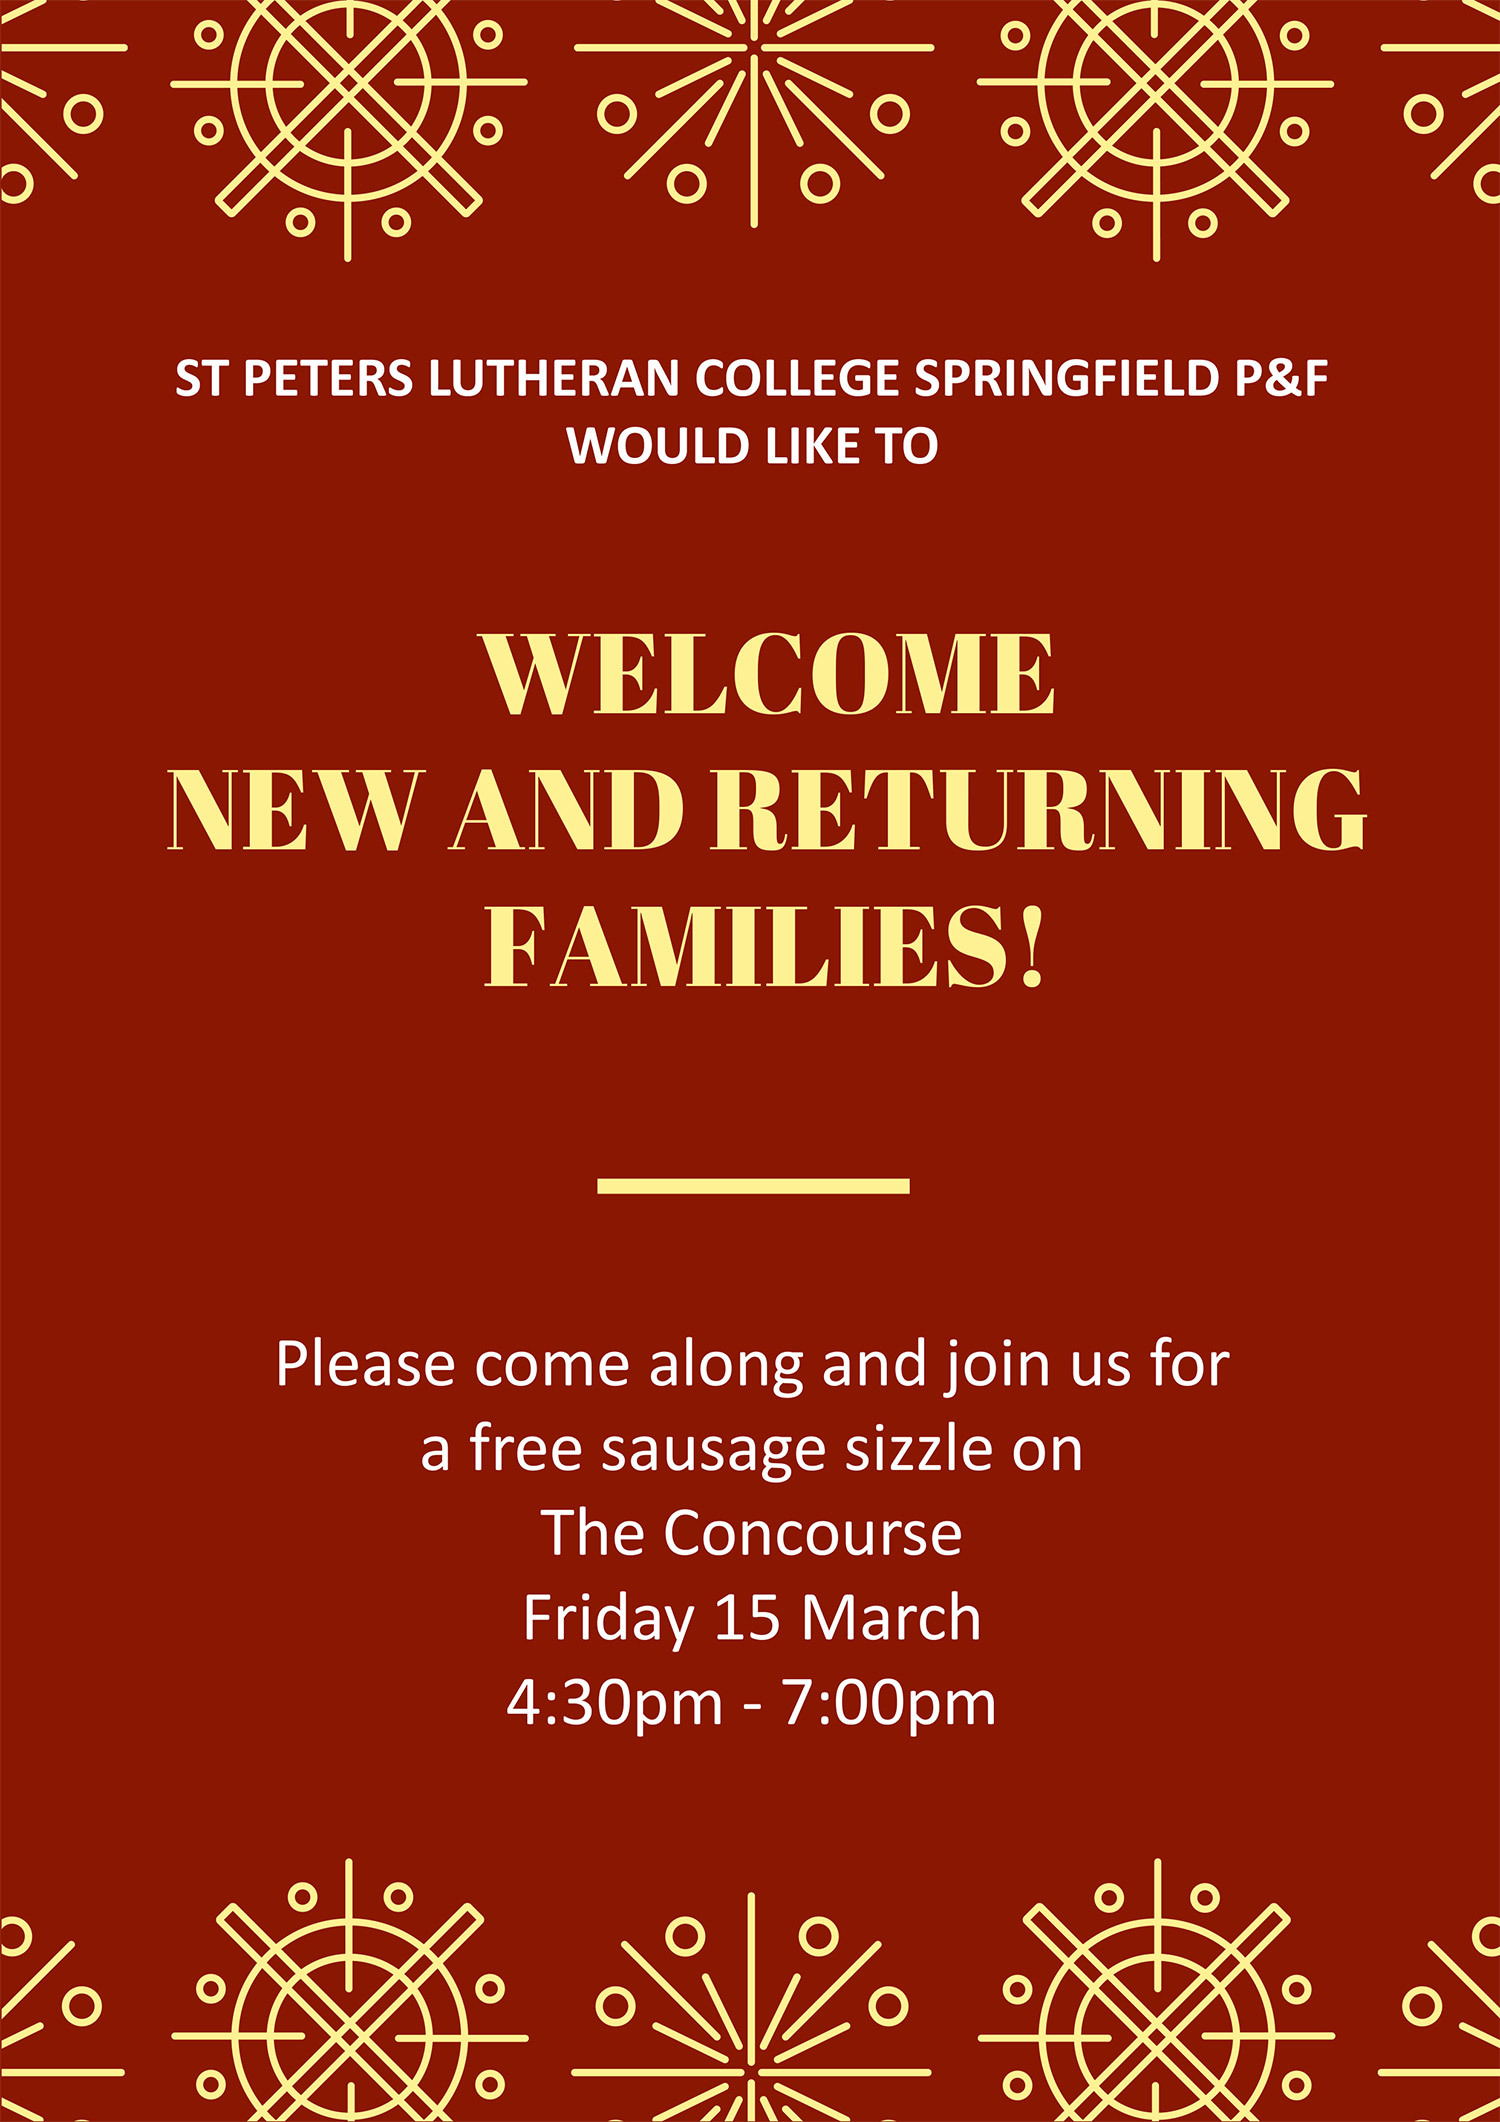 Welcome New & Returning Families